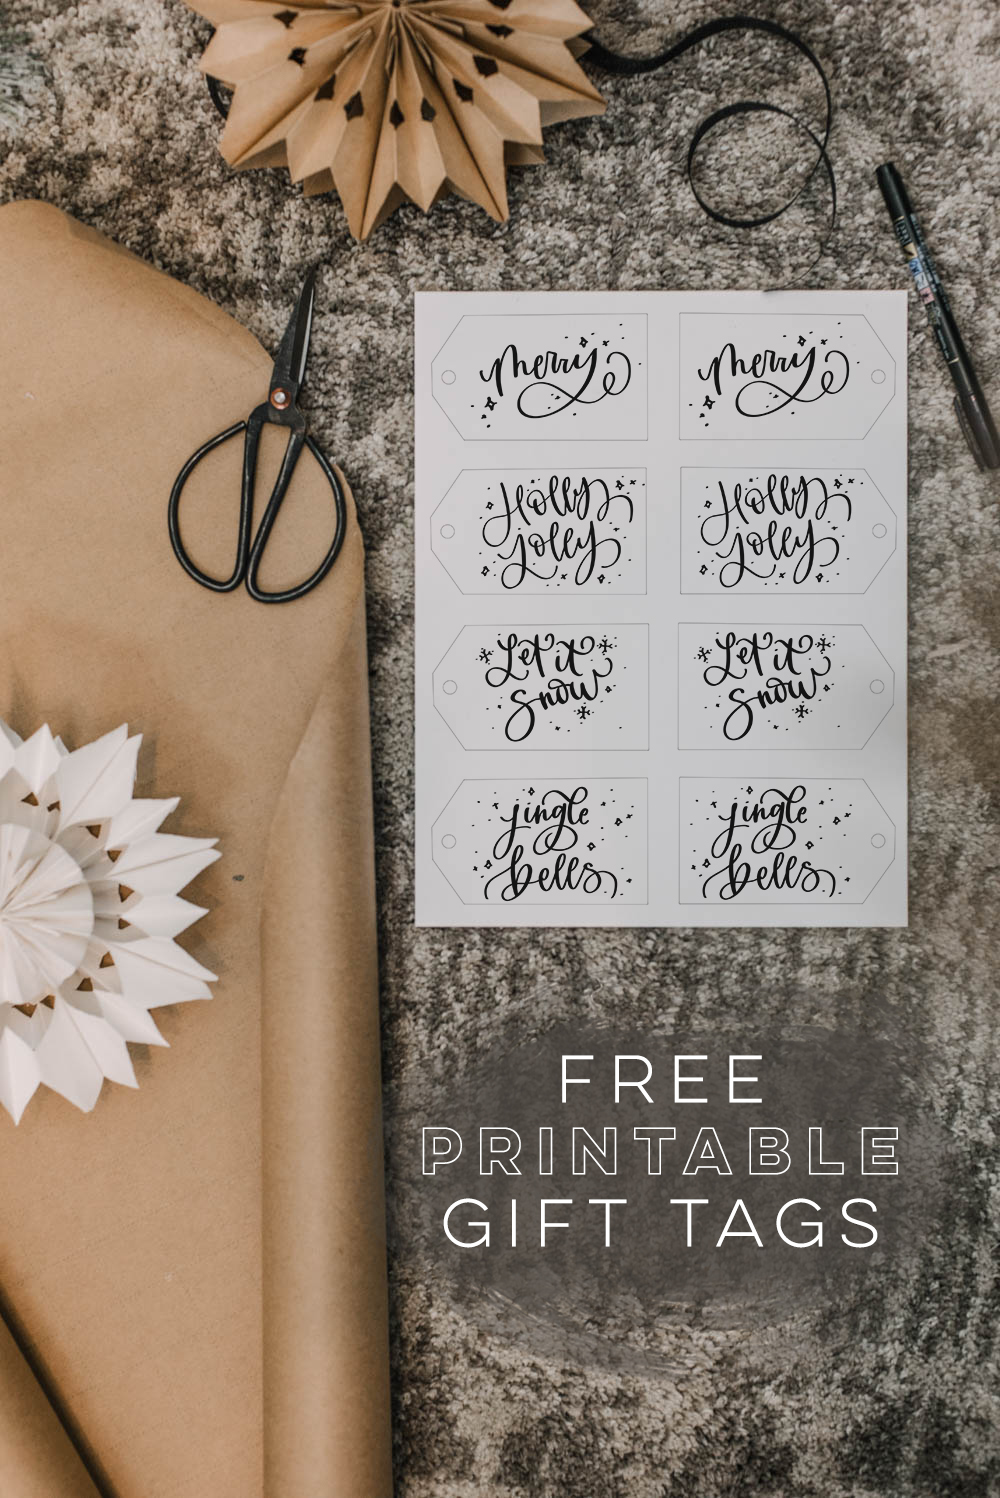 4 Free Printable Hand Lettered Gift Tags